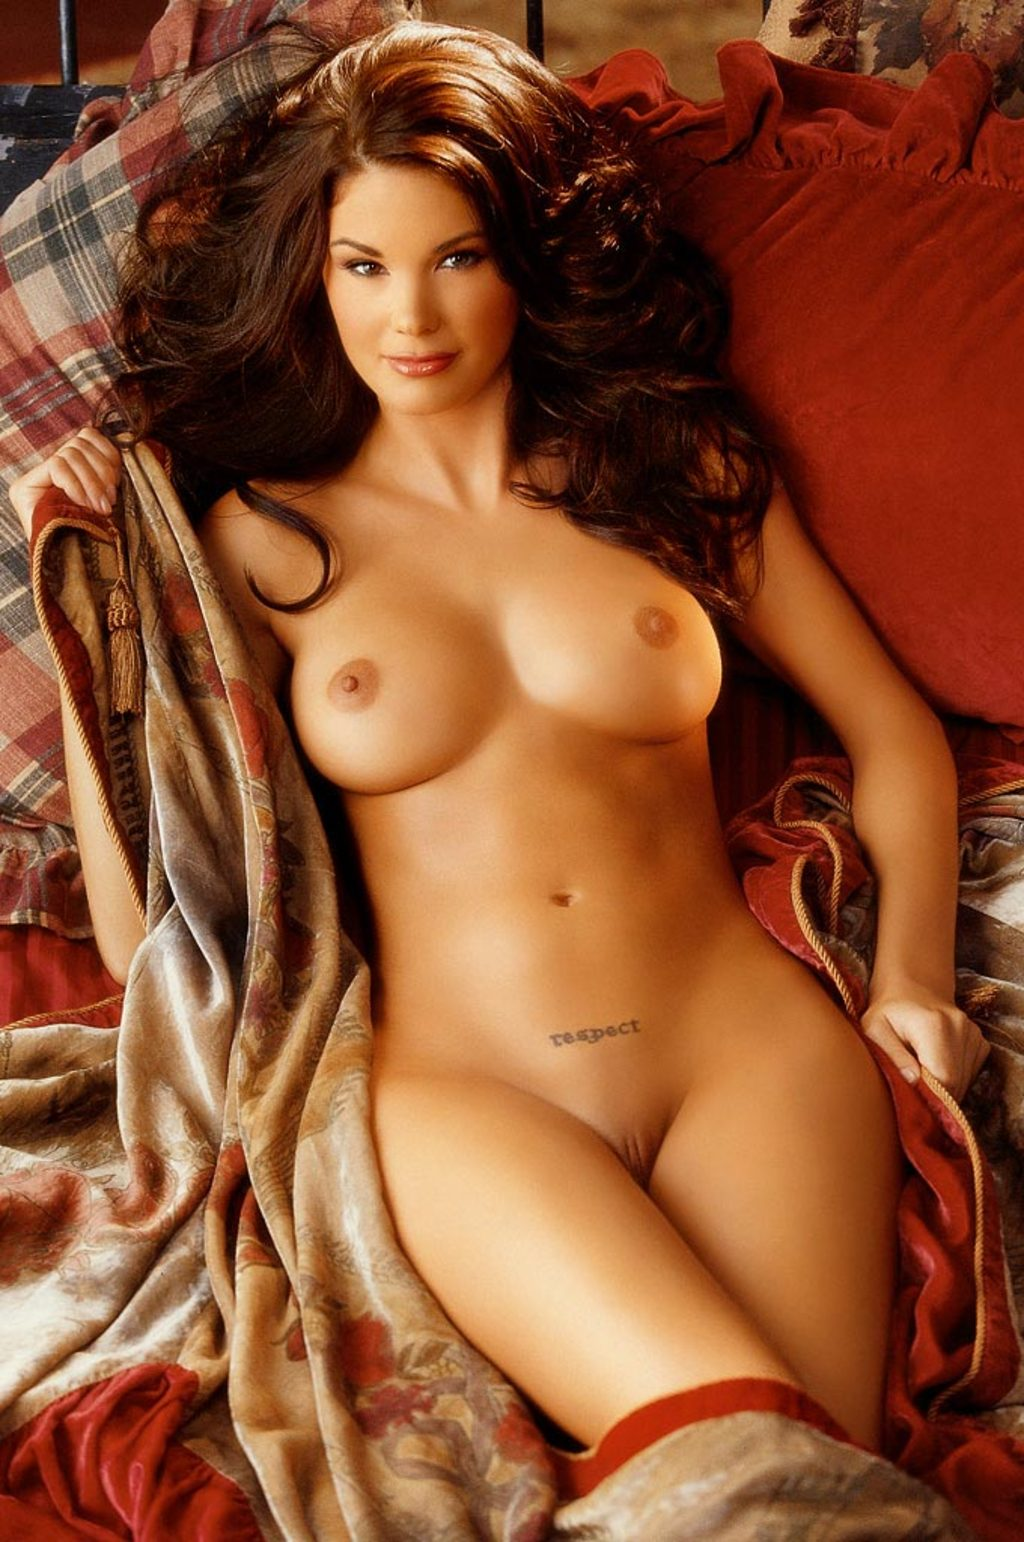 The amusing jayde nicole pics nuda think, what